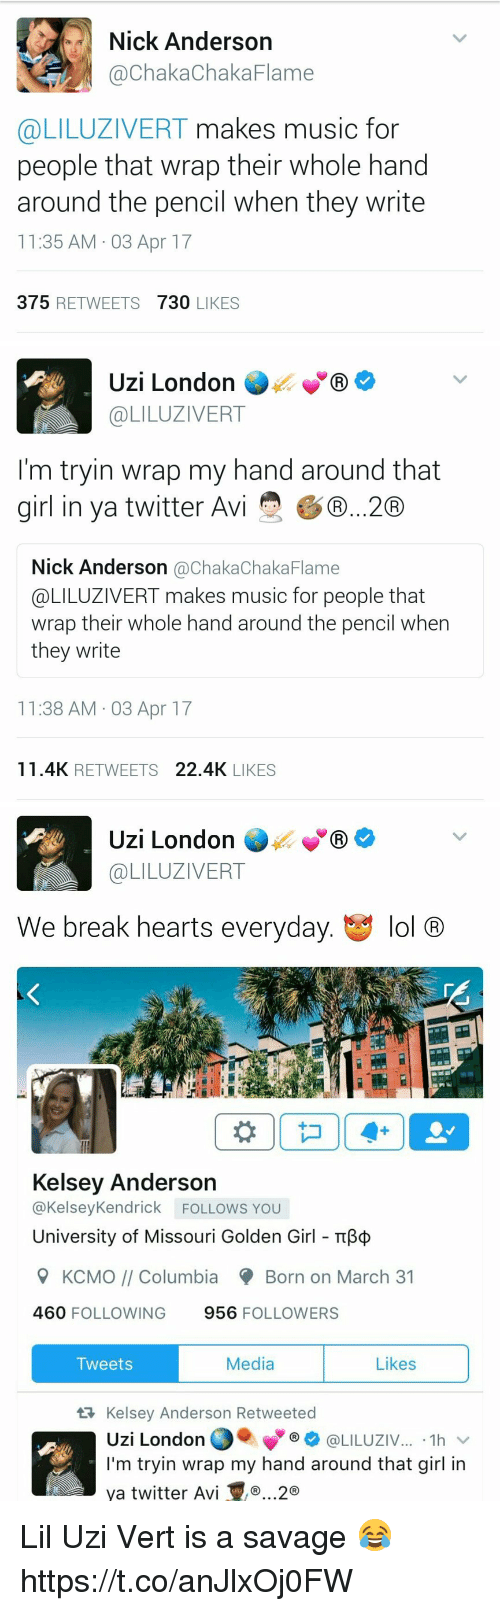 Lol, Memes, and Music: Nick Anderson  @Chaka ChakaFlame  @LILUZIVERT makes music for  people that wrap their whole hand  around the pencil when they write  11:35 AM 03 Apr 17  375  RETWEETS  730  LIKES   Uzi London  COLILUZIVERT  I'm tryin wrap my hand around that  girl in ya twitter Avi  GD...20  Nick Anderson  achakaChaka Flame  @LILUZIVERT makes music for people that  wrap their whole hand around the pencil when  they write  11:38 AM 03 Apr 17  11.4K RETWEETS  22.4K  LIKES   Uzi London  GR  @LILUZIVERT  We break hearts everyday  t y lol  CRO  Kelsey Anderson  @Kelsey Kendrick FOLLOWS YOU  University of Missouri Golden Girl TTB  9 KCMO Columbia Born on March 31  460  FOLLOWING  956  FOLLOWERS  Media  Likes  Tweets  tR Kelsey Anderson Retweeted  Uzi London  @LILUZIV  1h  I'm tryin wrap my hand around that girl in  ya twitter Avi ..2 Lil Uzi Vert is a savage 😂 https://t.co/anJlxOj0FW